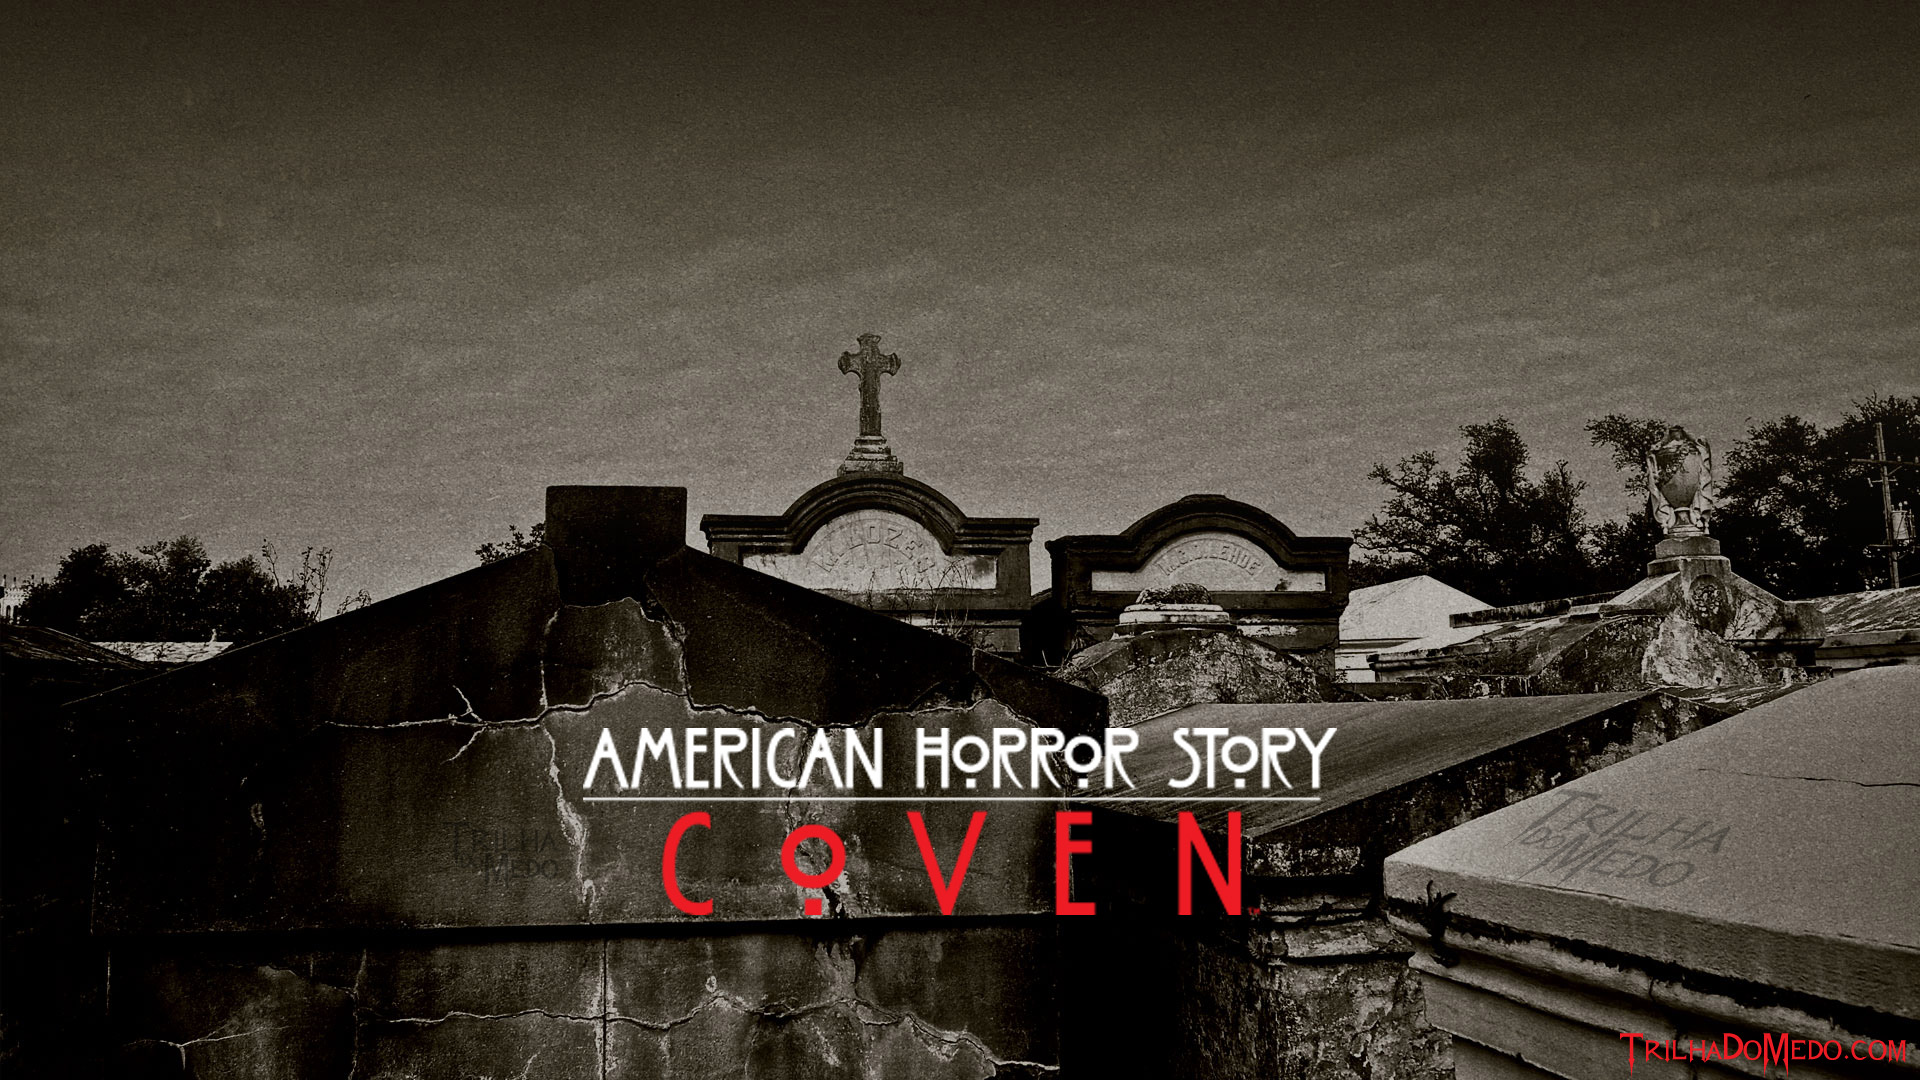 Free Download 15942 American Horror Story Coven Wallpaper